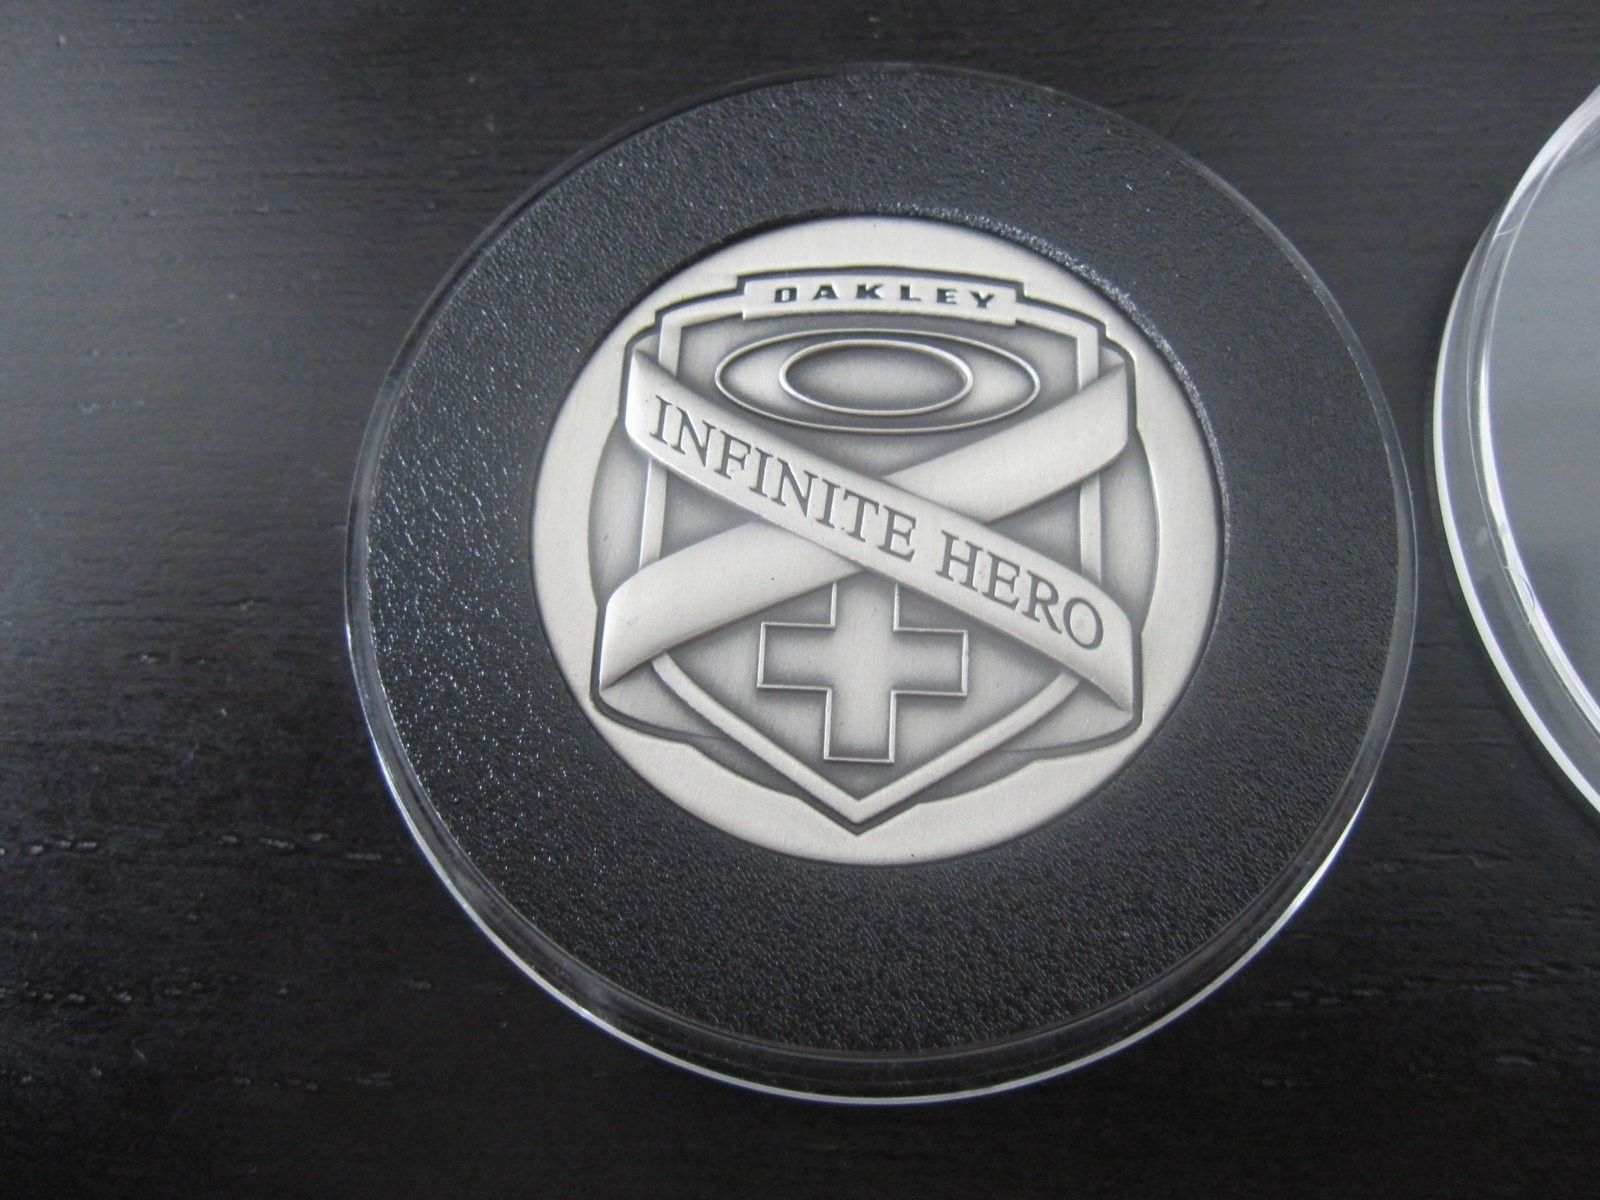 BNIB Infinite Hero coin - GONE - IMG_4958.JPG